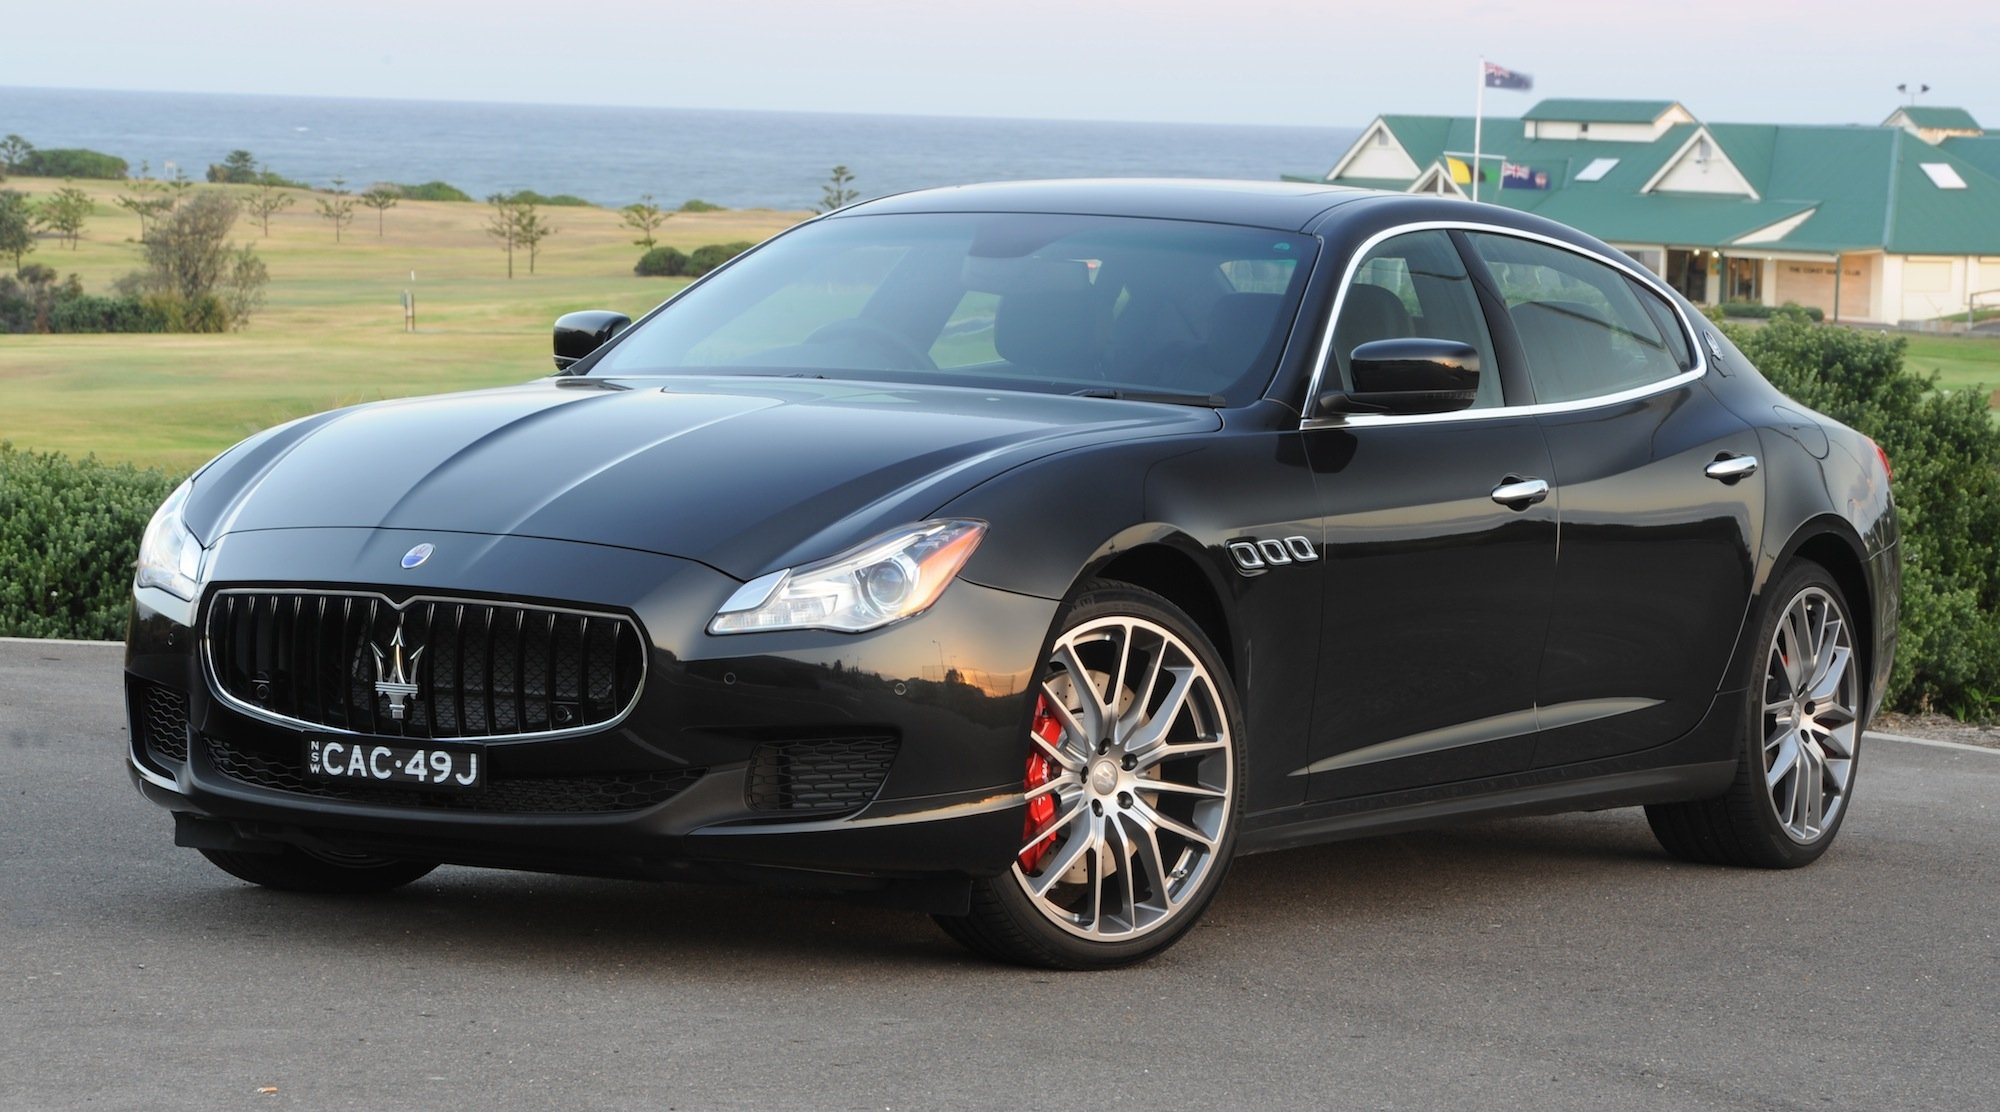 2014 maserati quattroporte review caradvice. Black Bedroom Furniture Sets. Home Design Ideas